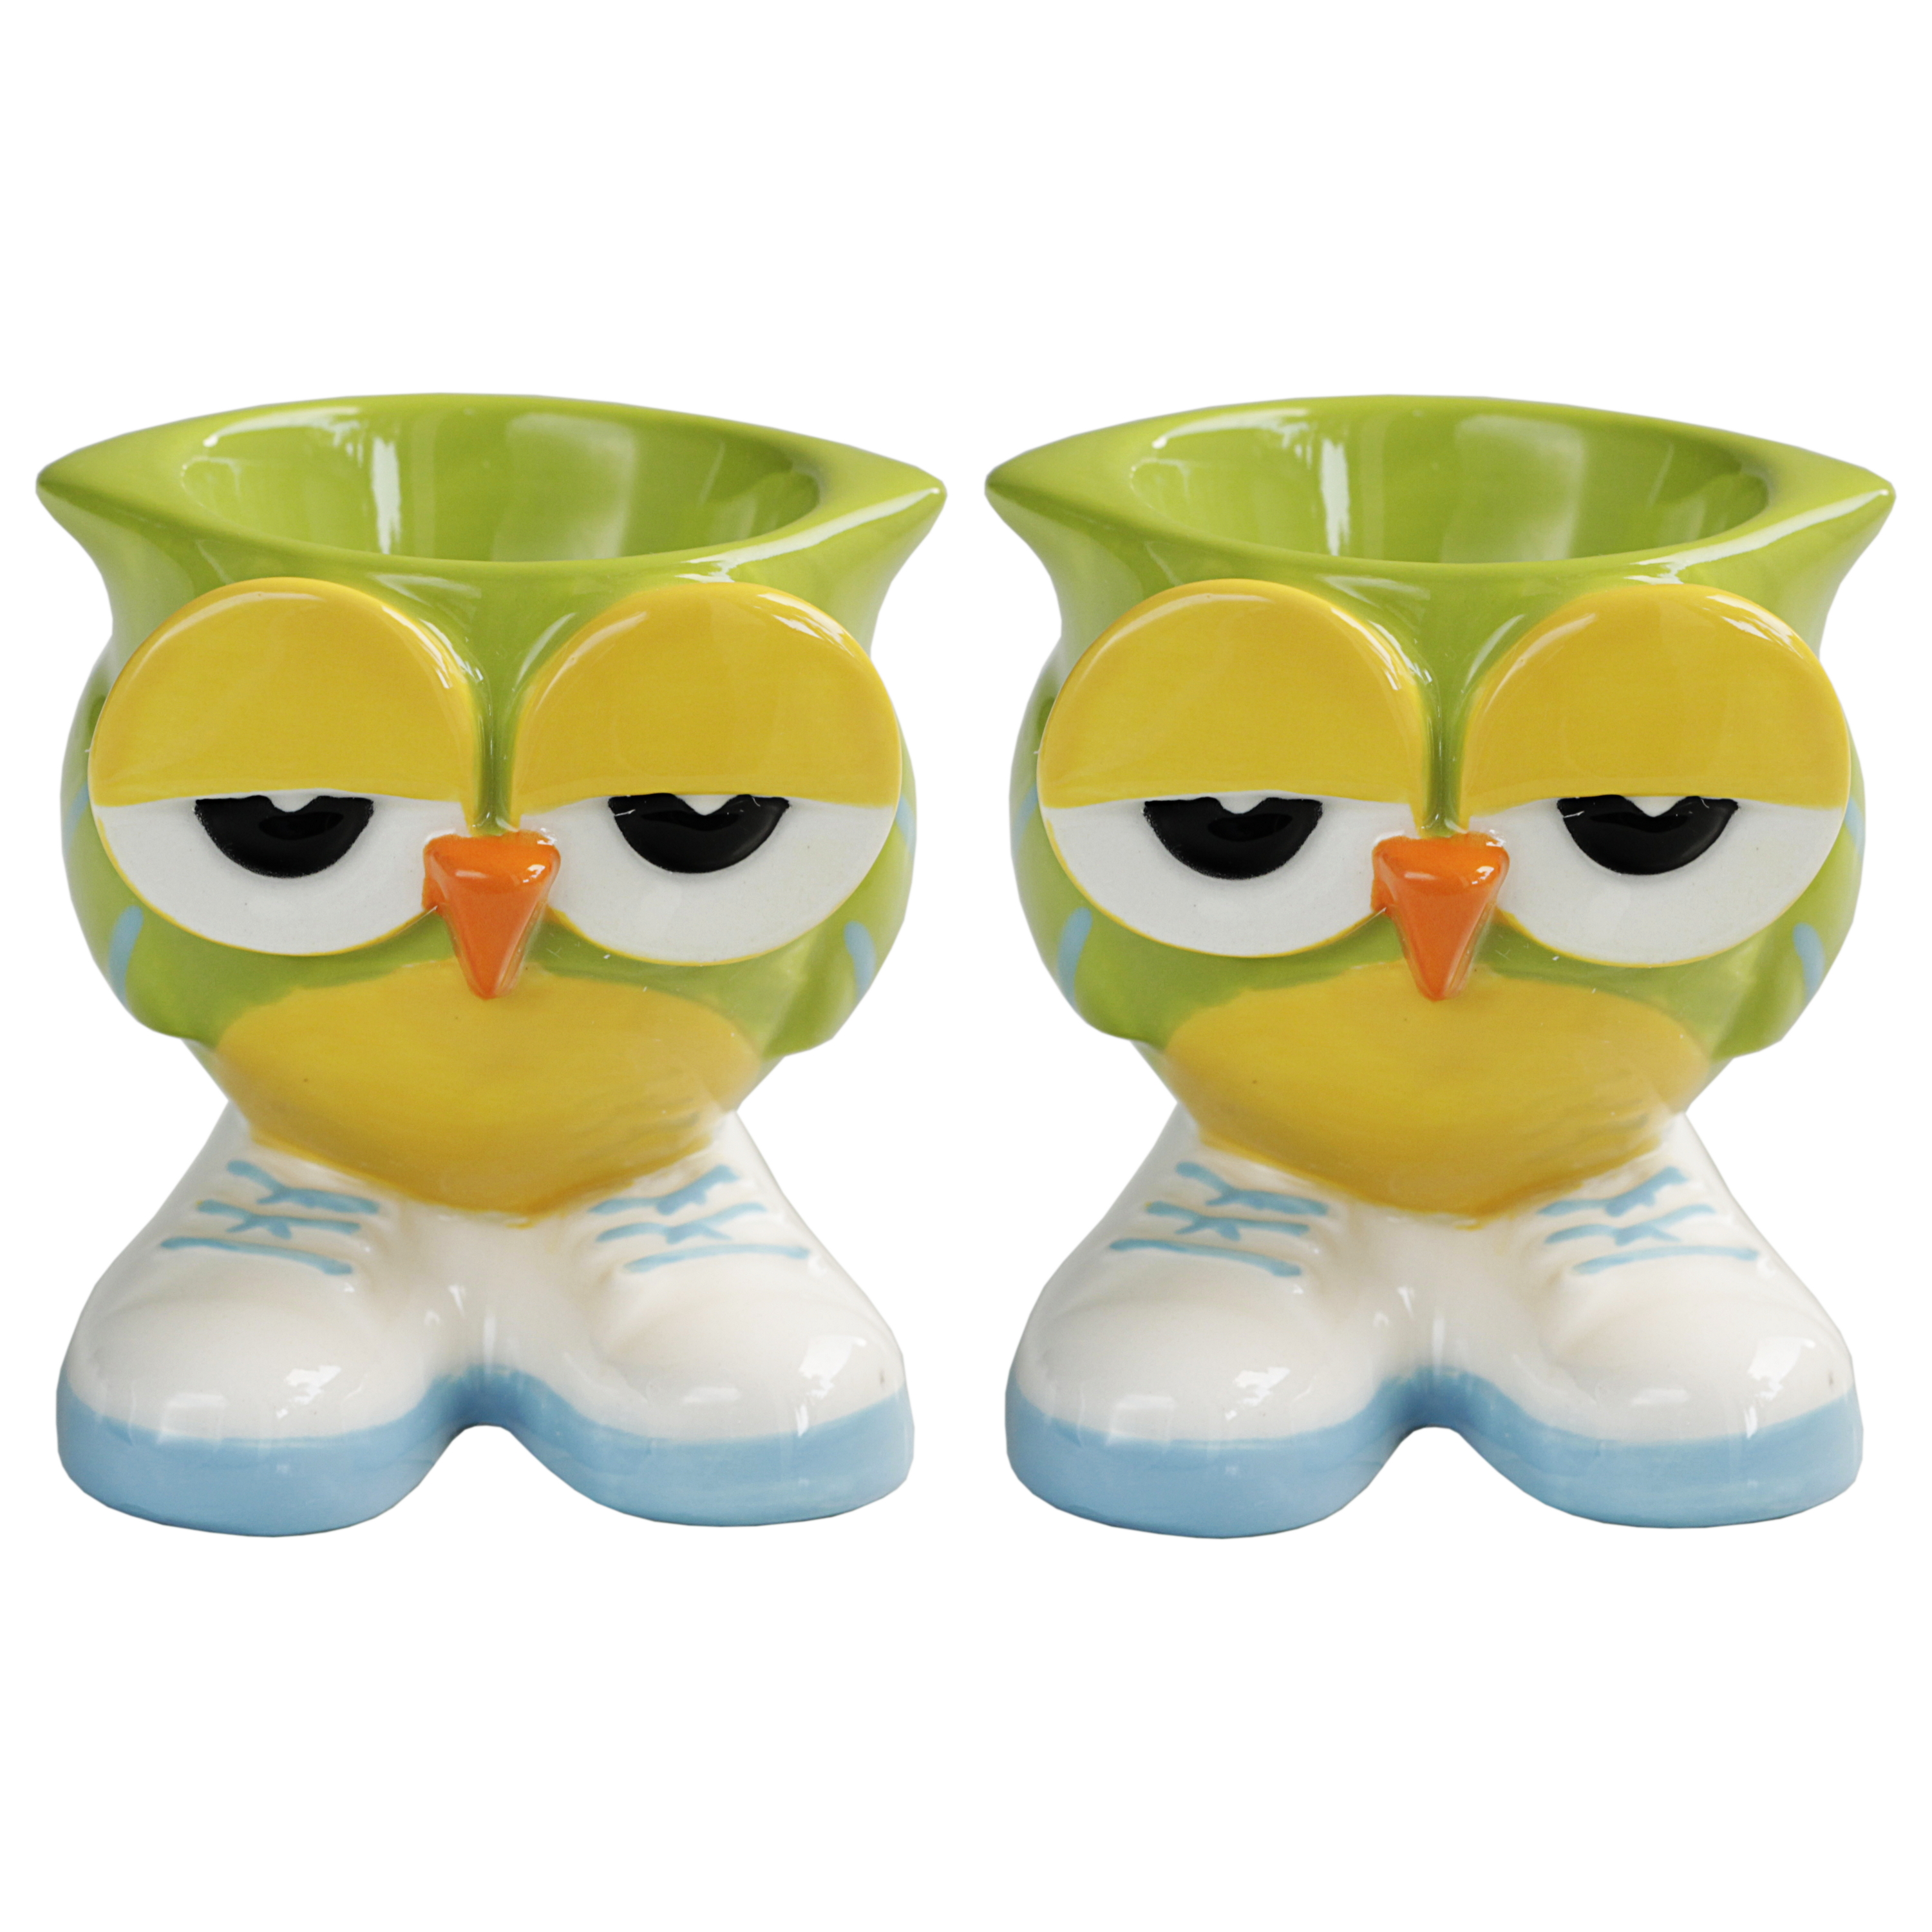 Grasslands Road Green Hand Painted Stoneware Owl Egg Cup, Set of 2